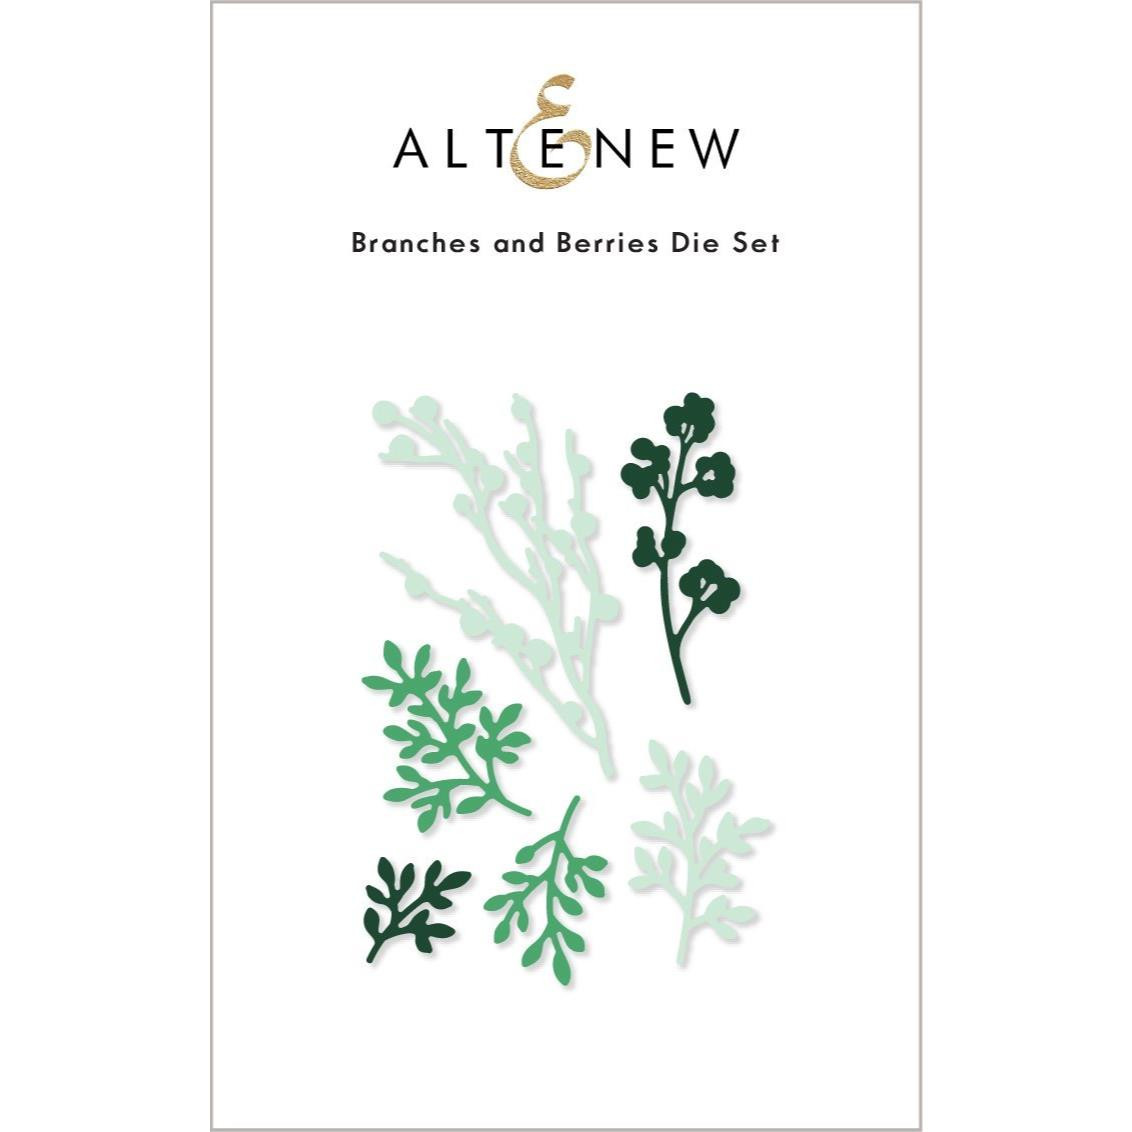 Branches and Berries, Altenew Dies -